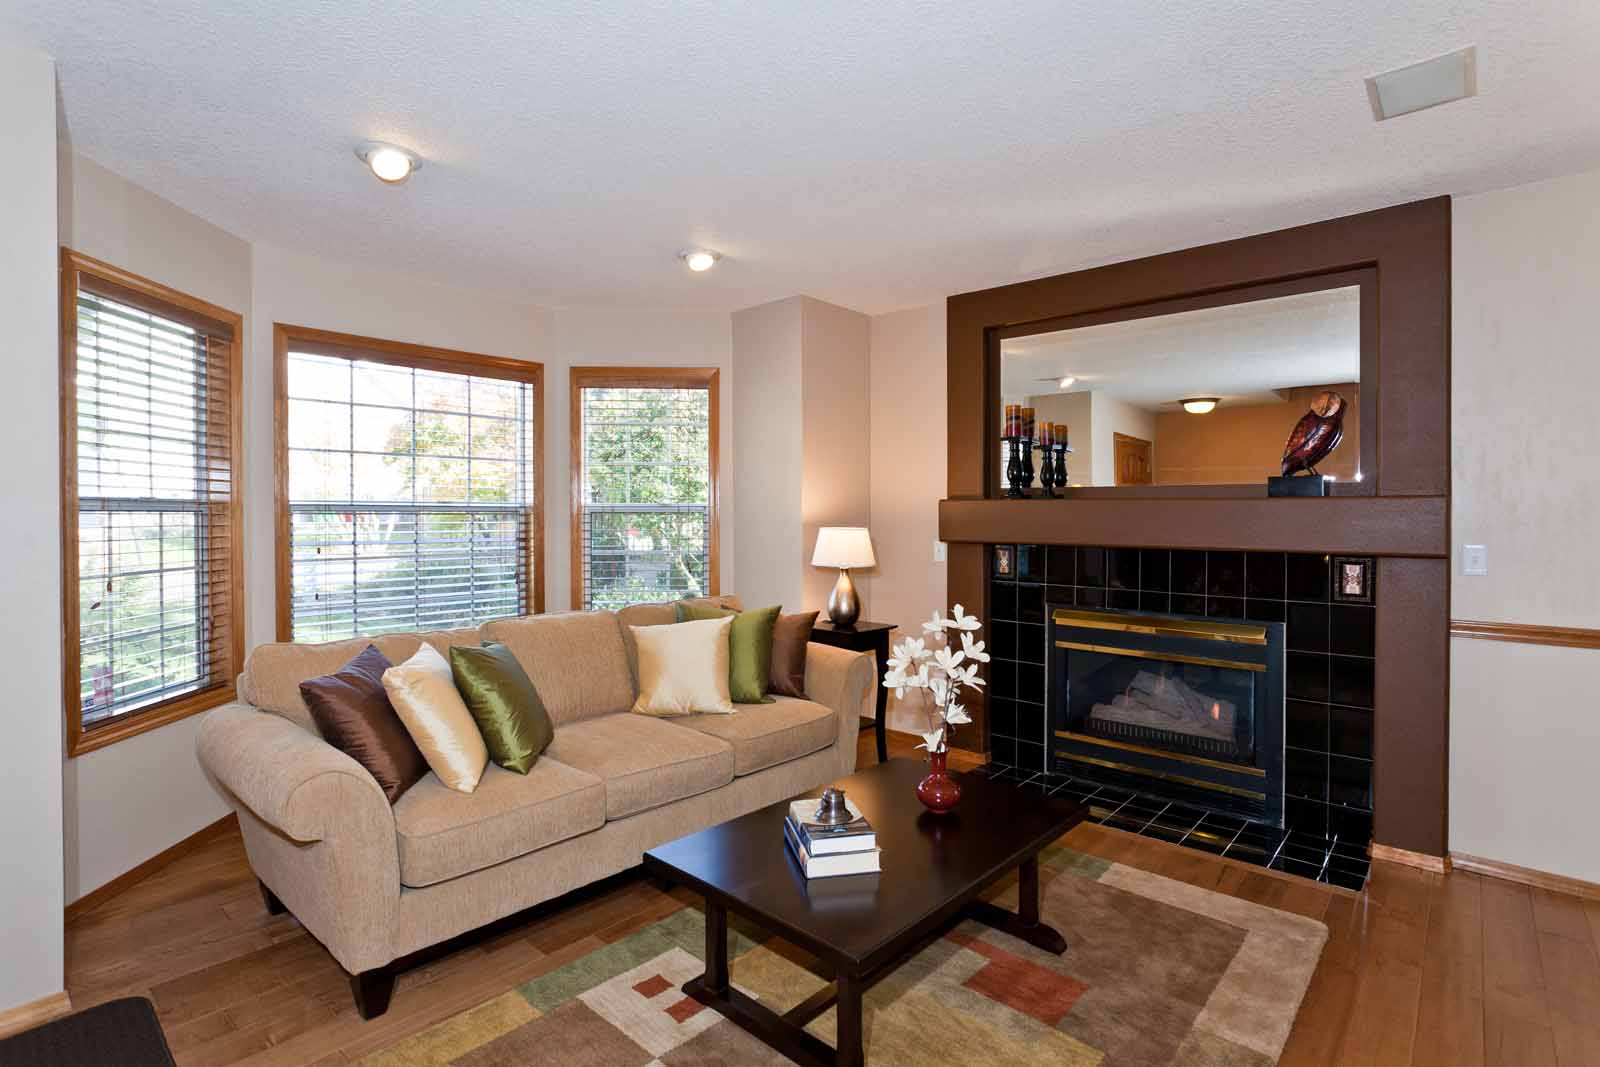 Home Staging, Home Staging Tips, Home Staging to Sell, Home Staging Ideas, Home Staging BEfore and After, Home Staging Ideas